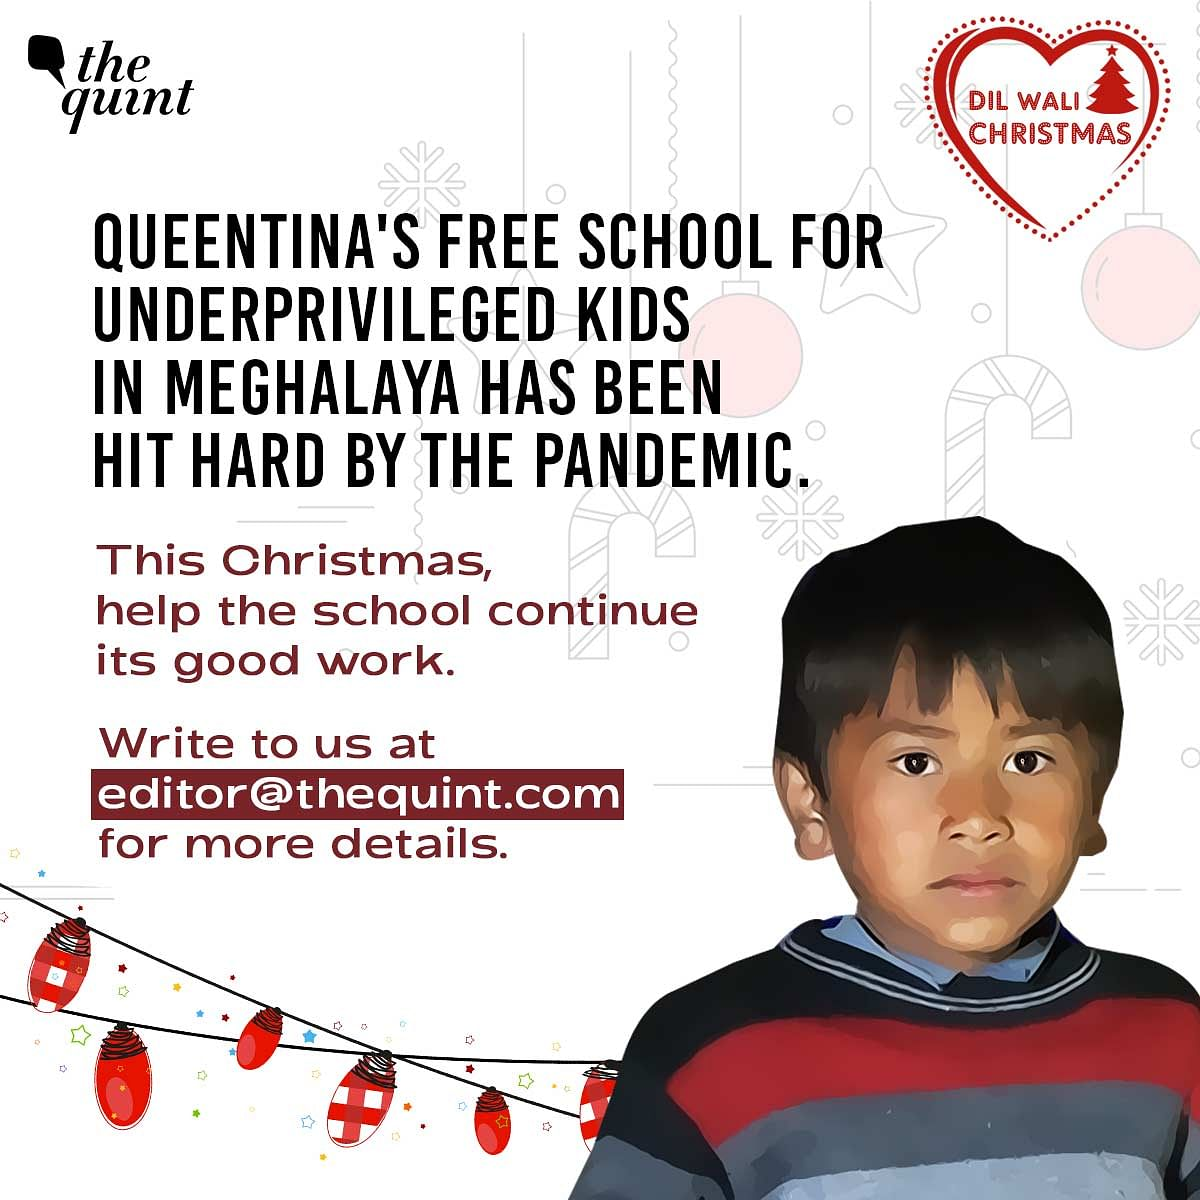 The Quint's fundraiser to help Queentina's school.